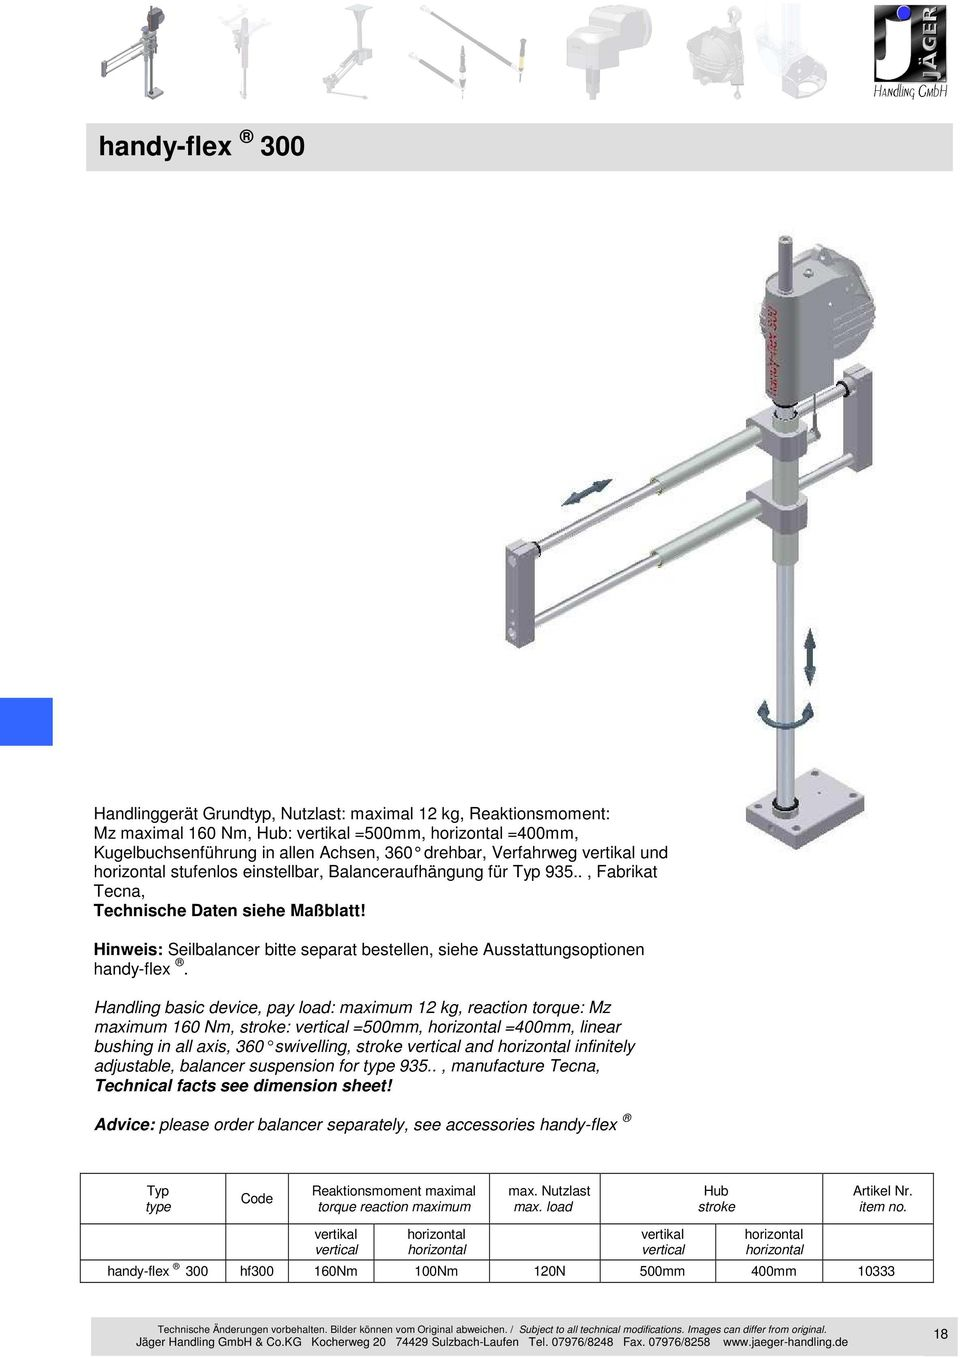 Handling basic device, pay load: maximum 12 kg, reaction torque: Mz maximum 160 Nm, stroke: vertical =500mm, =400mm, linear bushing in all axis, 360 swivelling, stroke vertic al and infinitely